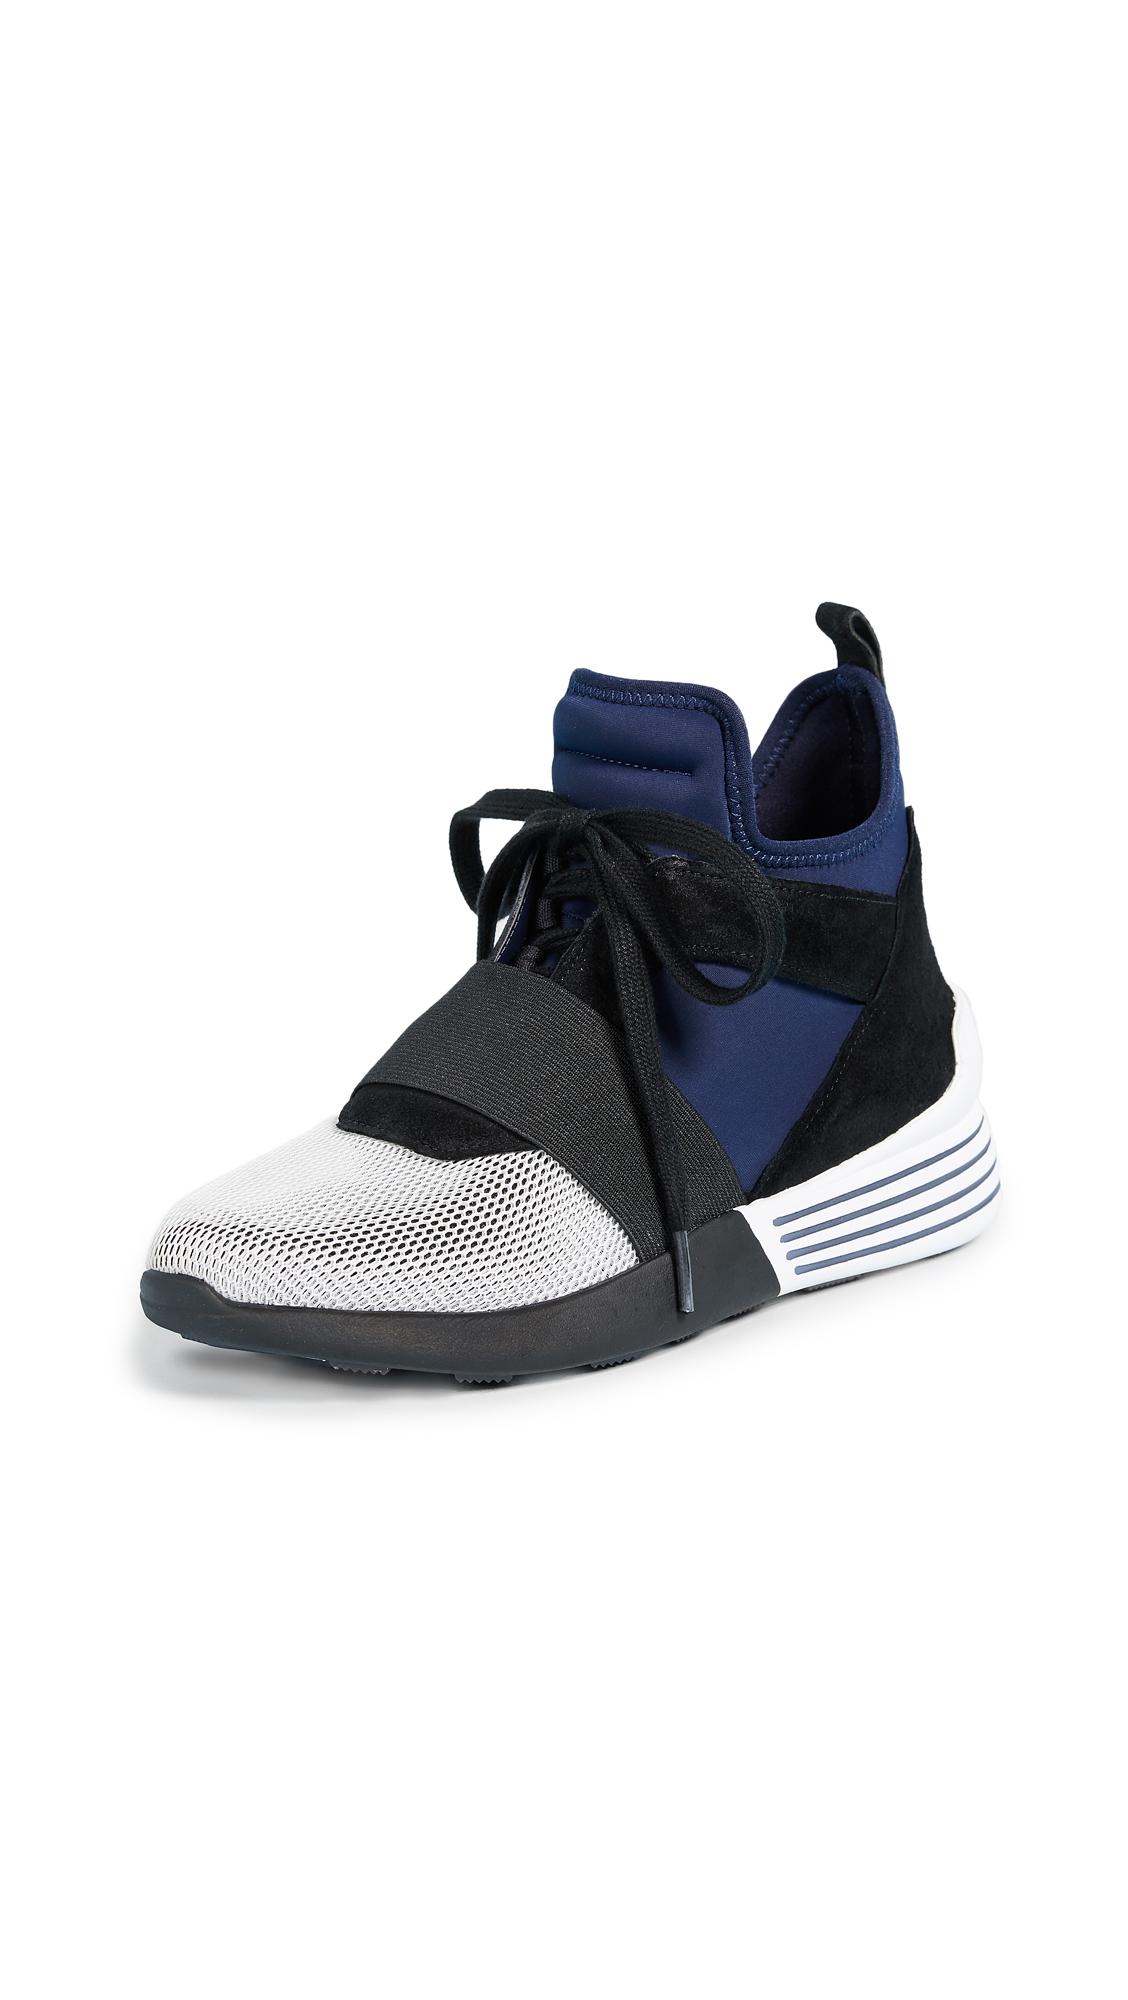 KENDALL + KYLIE Braydin Trainers - Navy/Grey